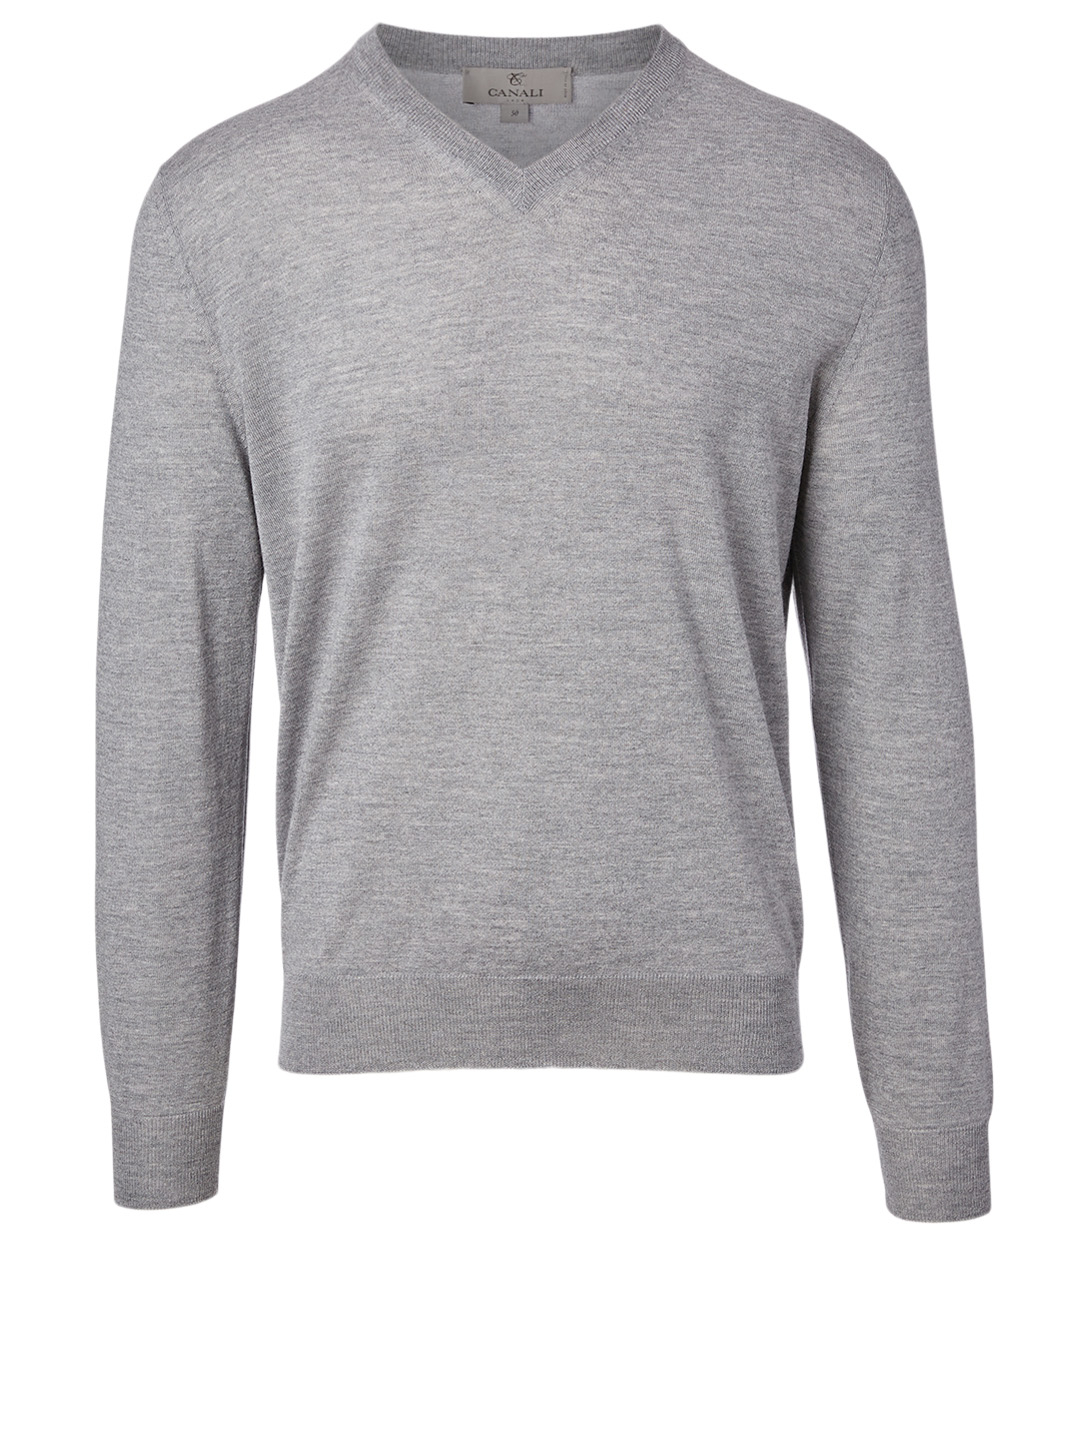 CANALI Wool V-Neck Sweater Men's Grey